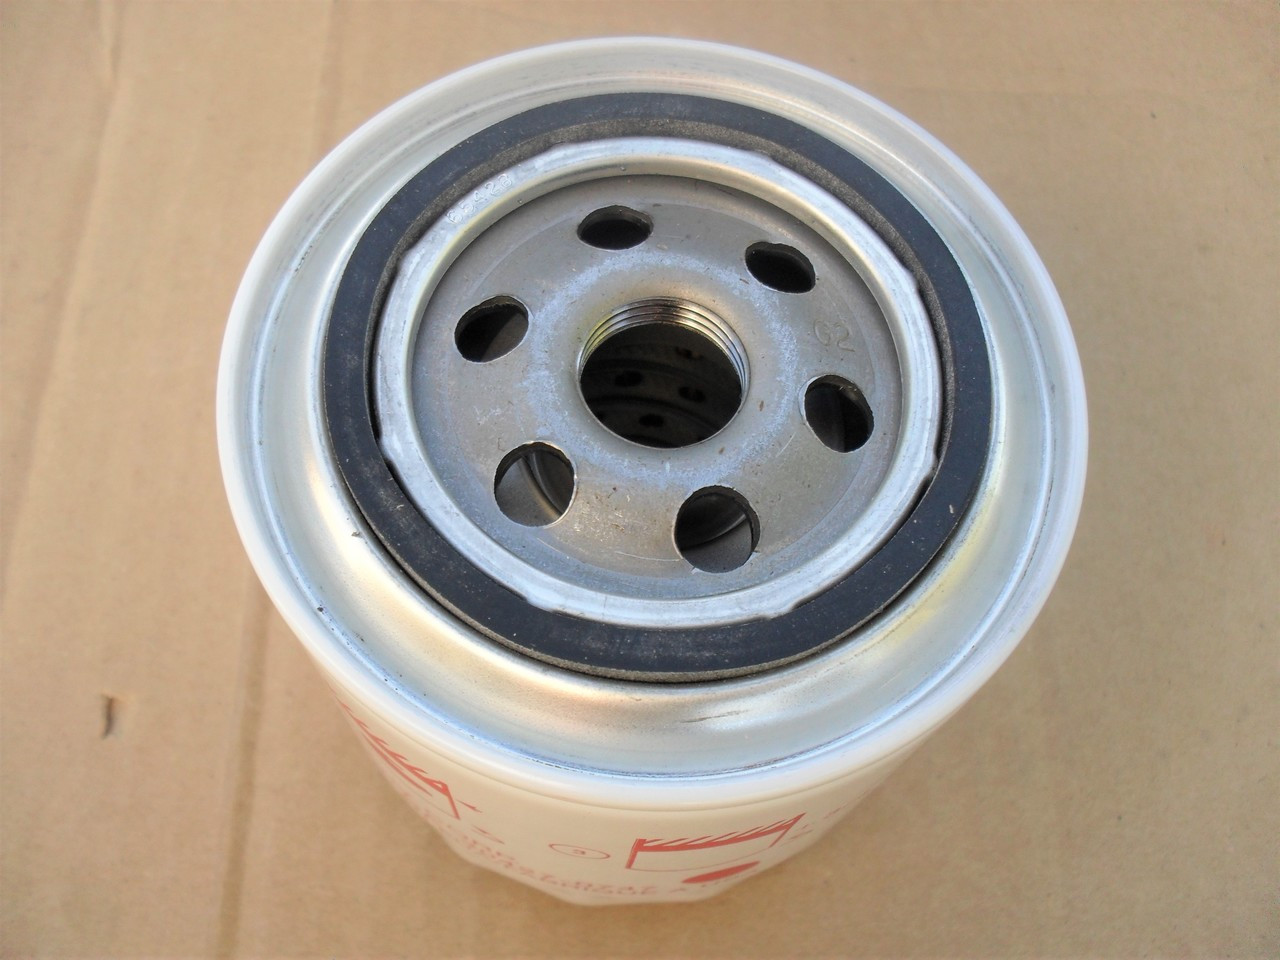 Transmission Oil Filter for Cub Cadet 1250, 1450, 1862, 723-3014, 923-3014,  IH-395789-R2 Hydro, Made In USA